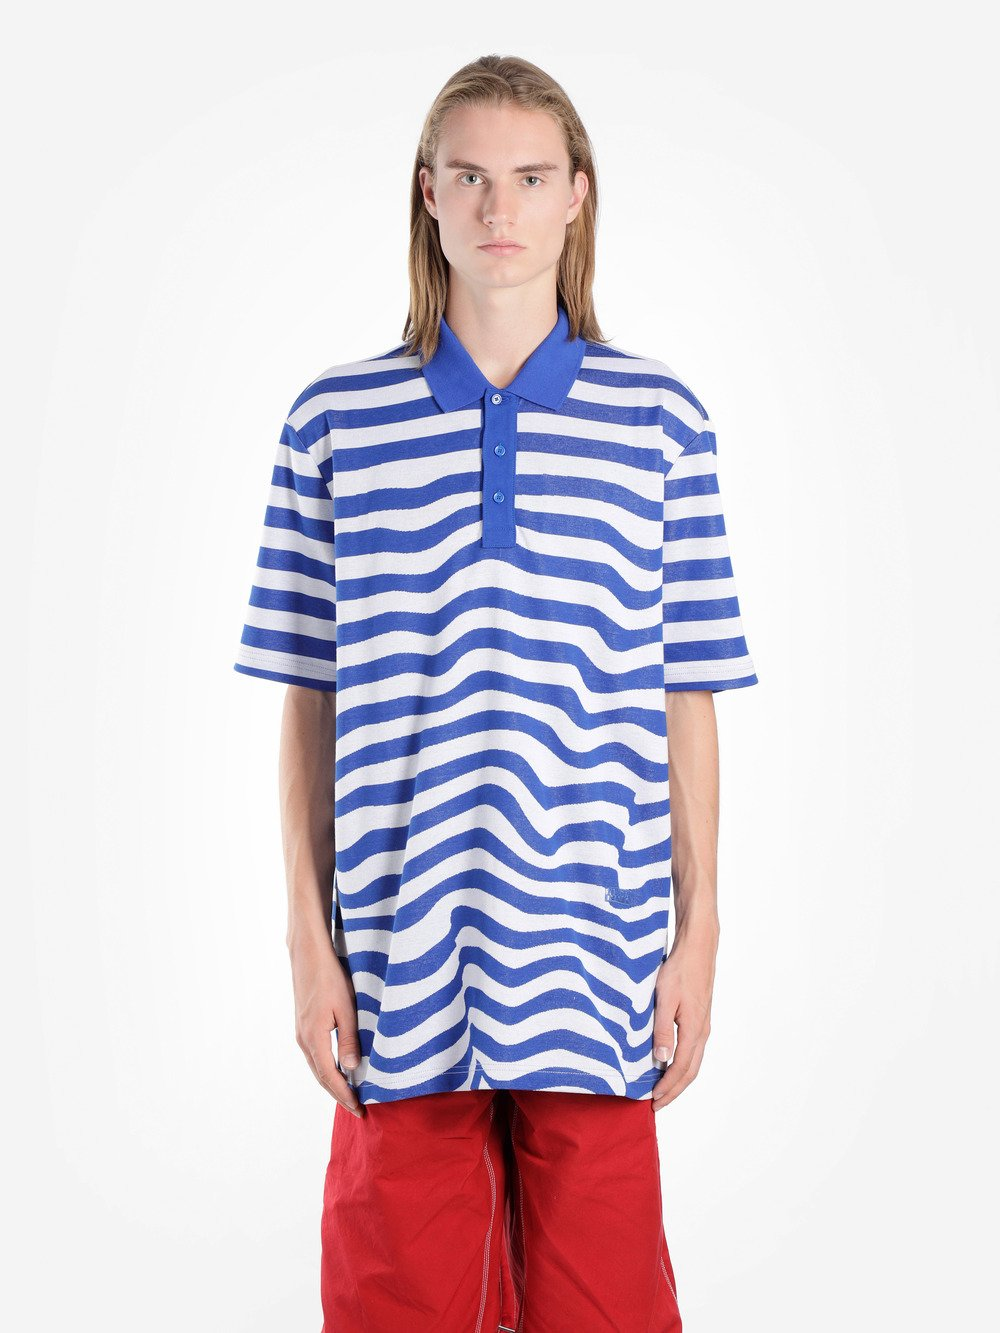 NAPA BY MARTINE ROSE Blue & White Stripe Ecce Polo